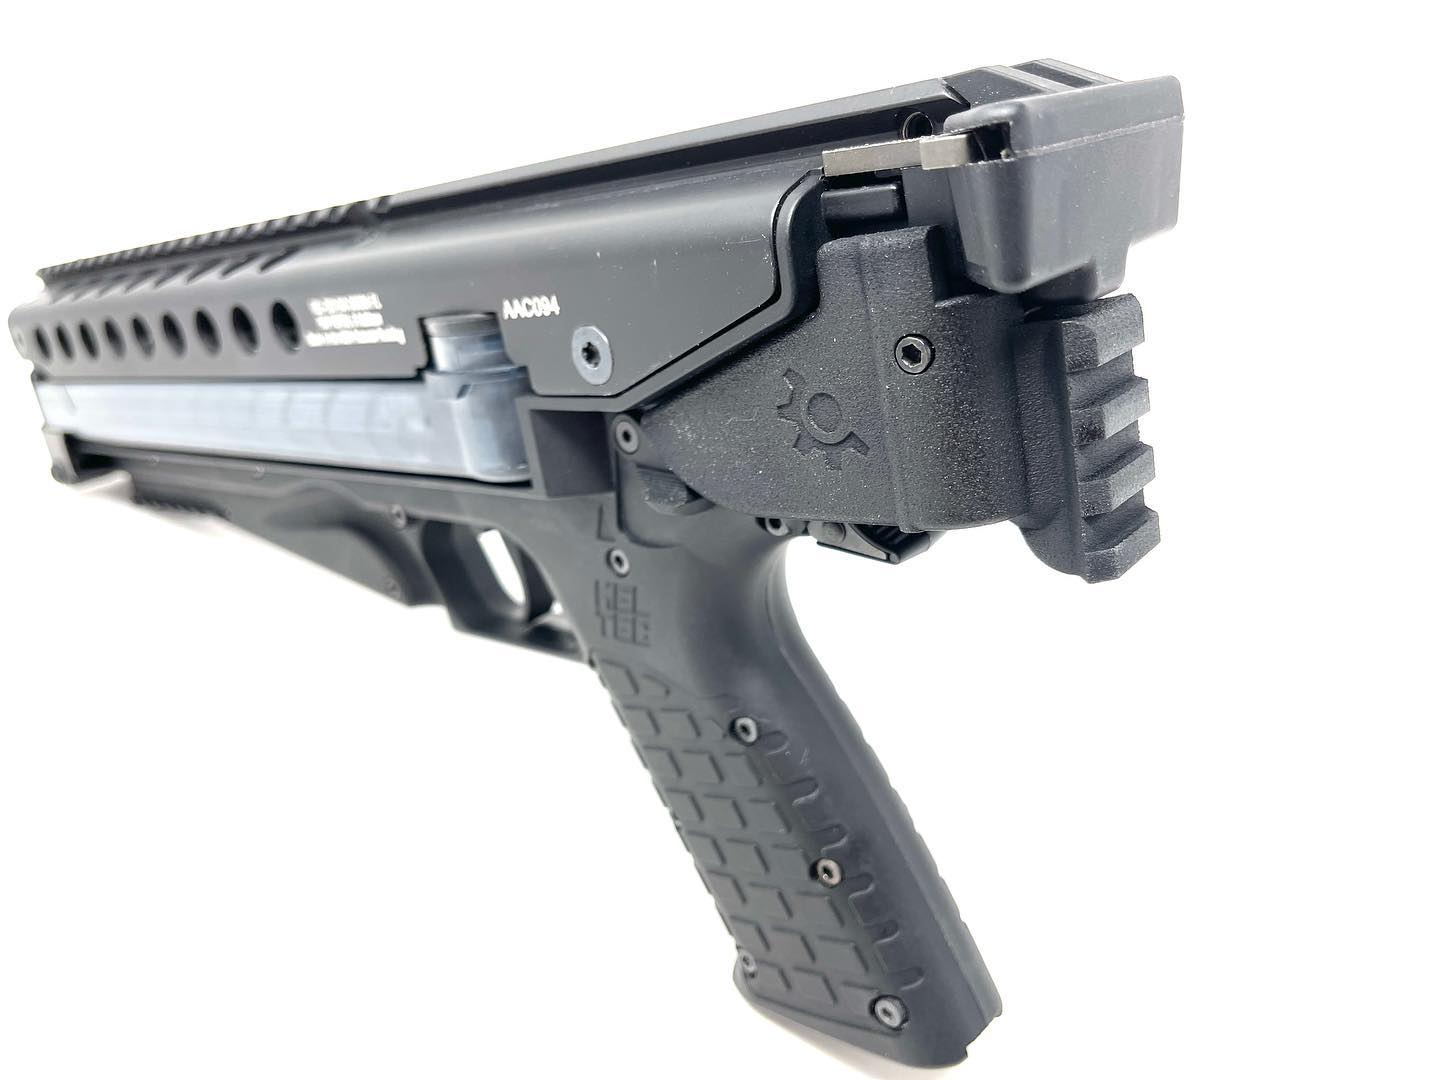 New CSM P50 Pic Rail for the KelTec P50 from Custom Smith MFG